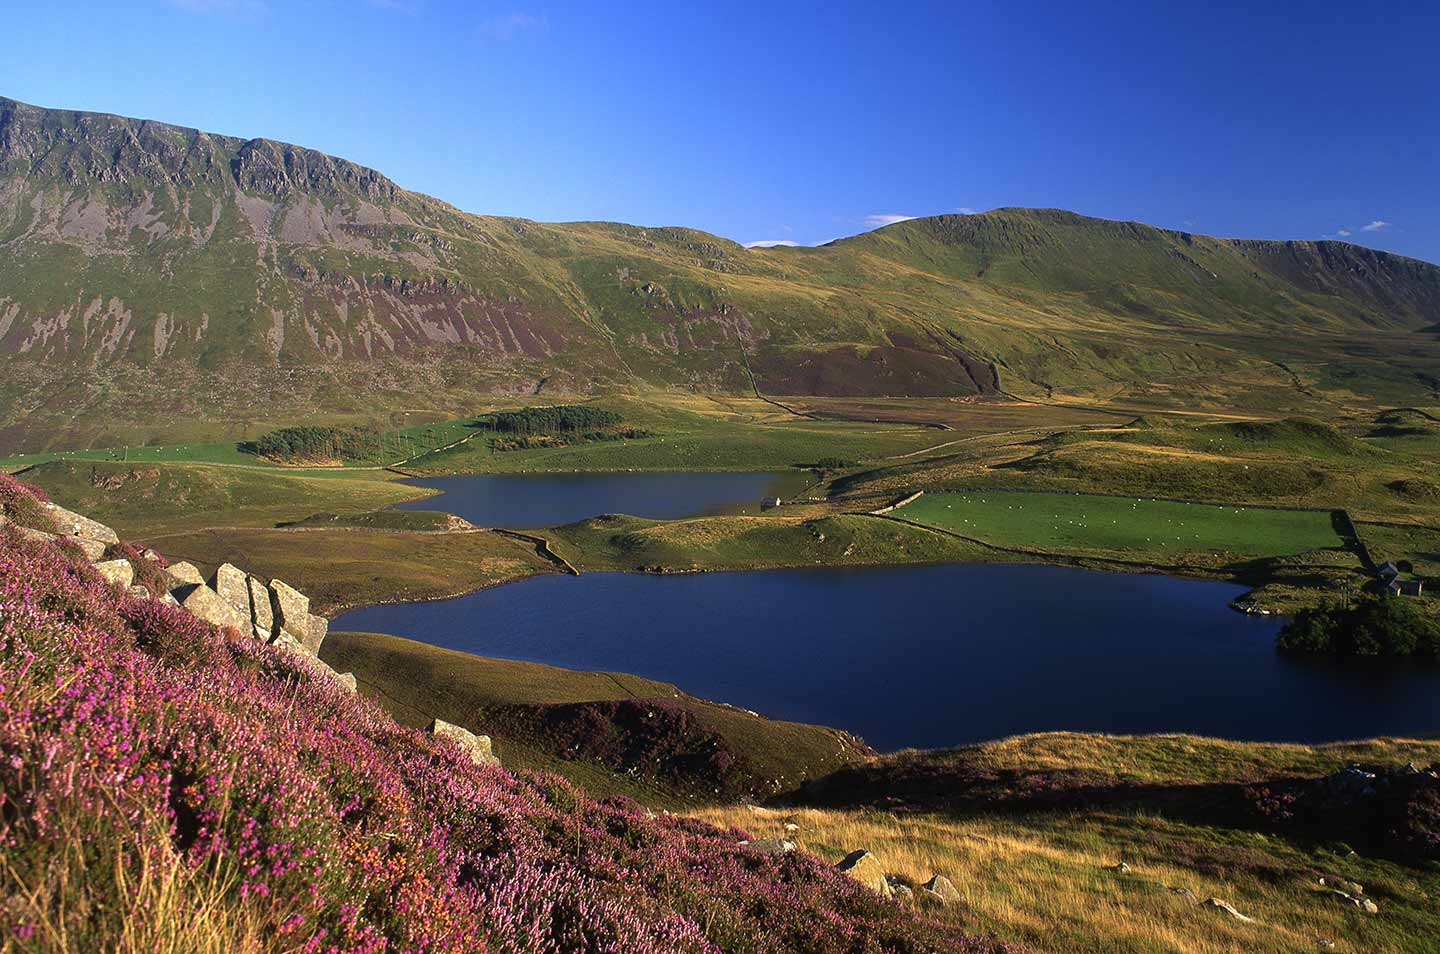 Image of the Cregennen Lakes in southern Snowdonia, Wales